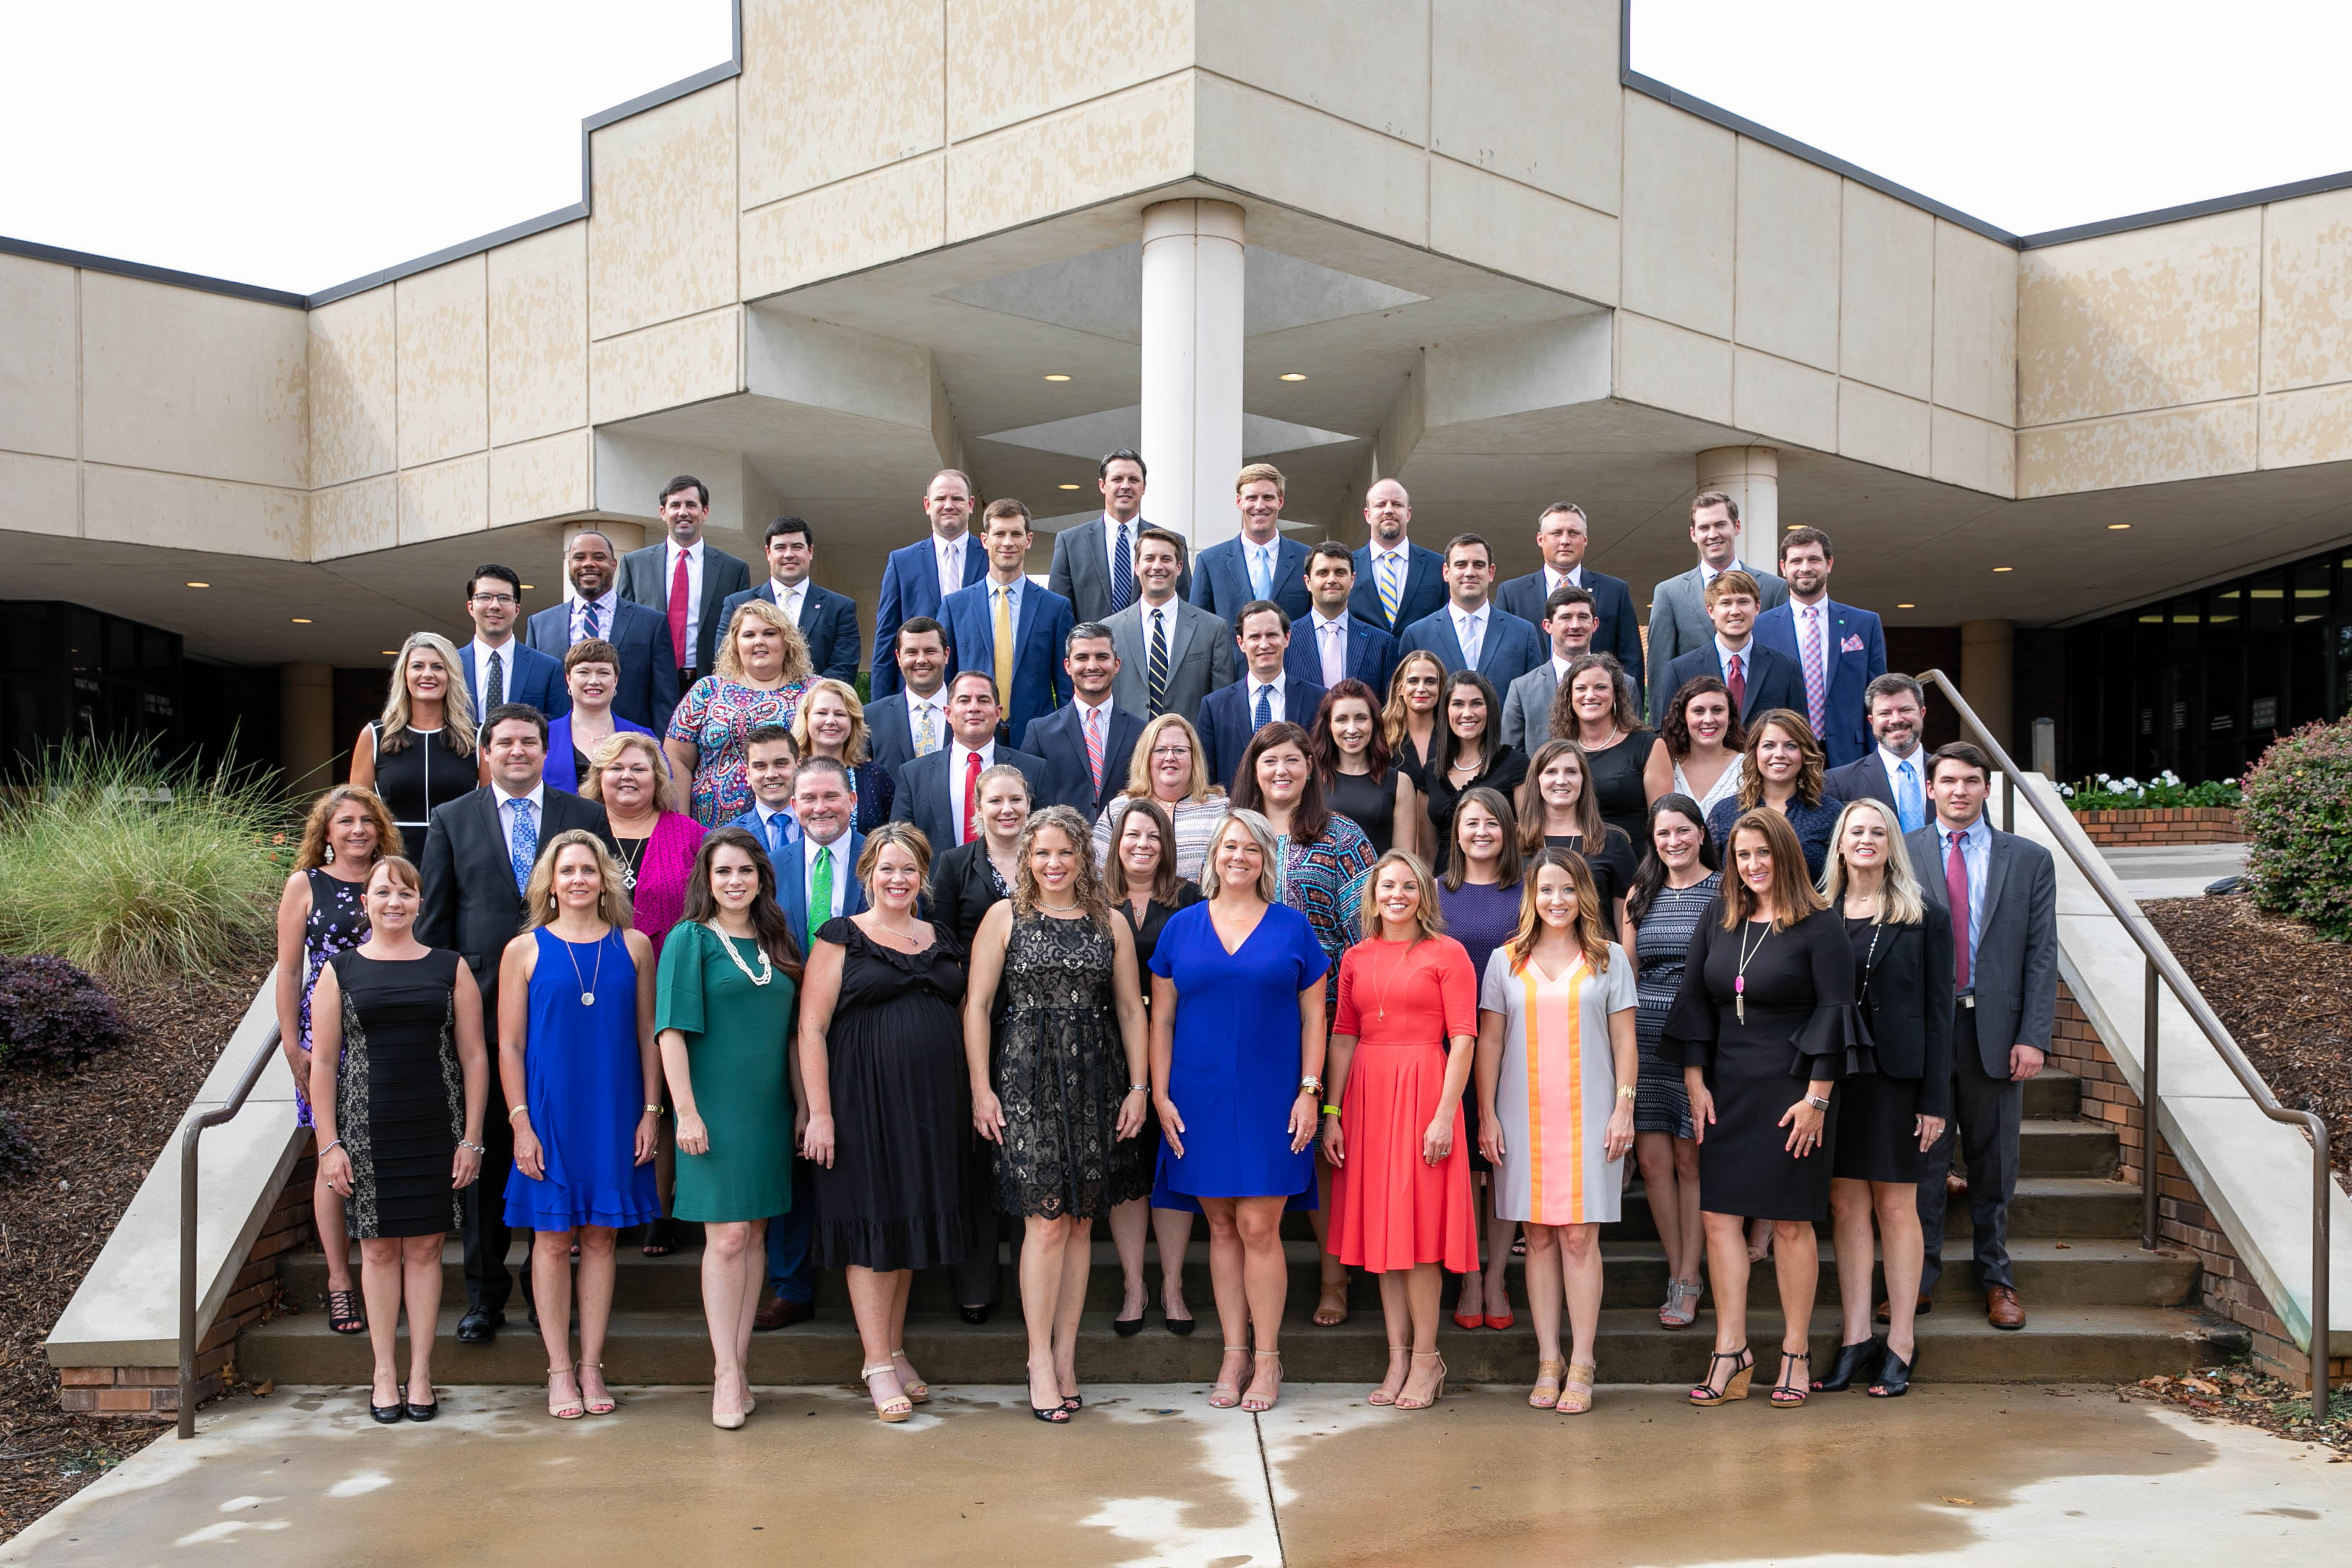 South Carolina Bankers School Graduating Class of 2019